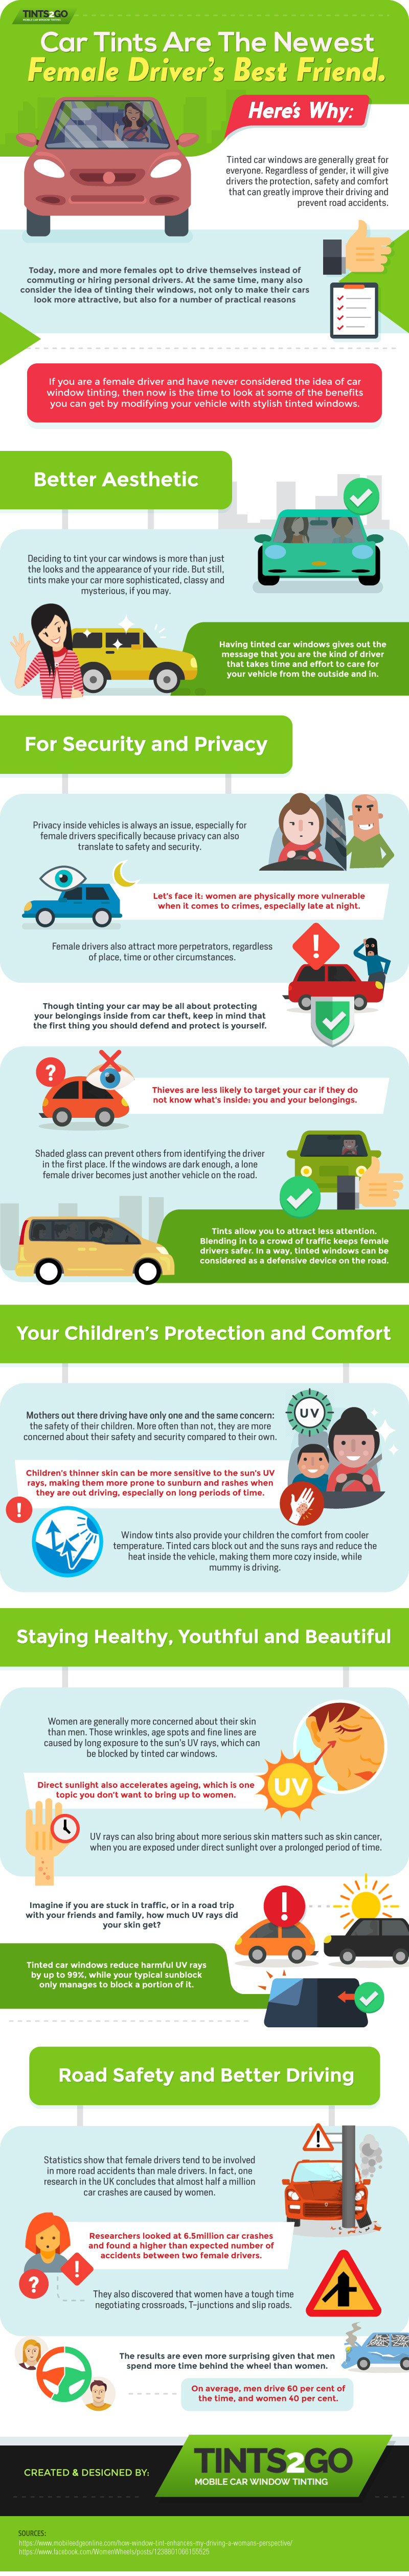 Car Tints Are the Newest Female Driver's Best Friend [Infographic]